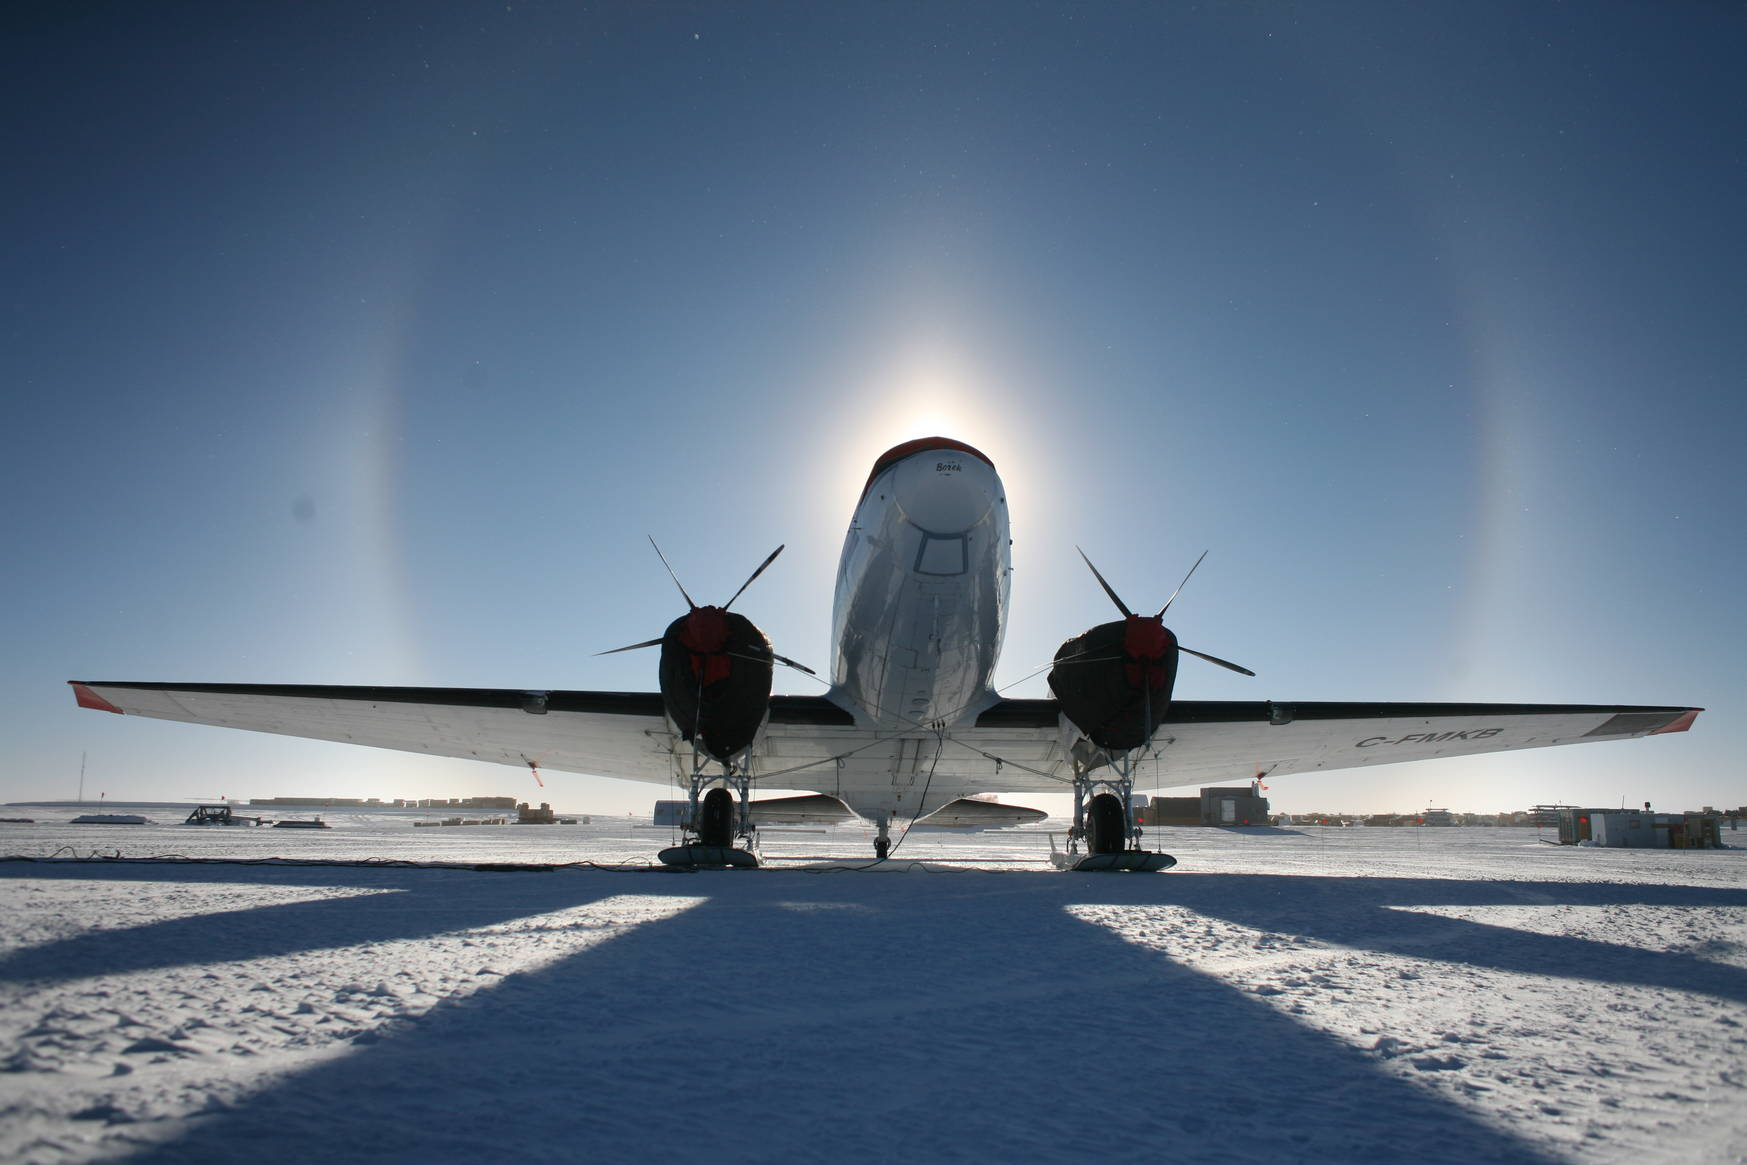 A Basler aircraft surrounded by a halo of the Sun.